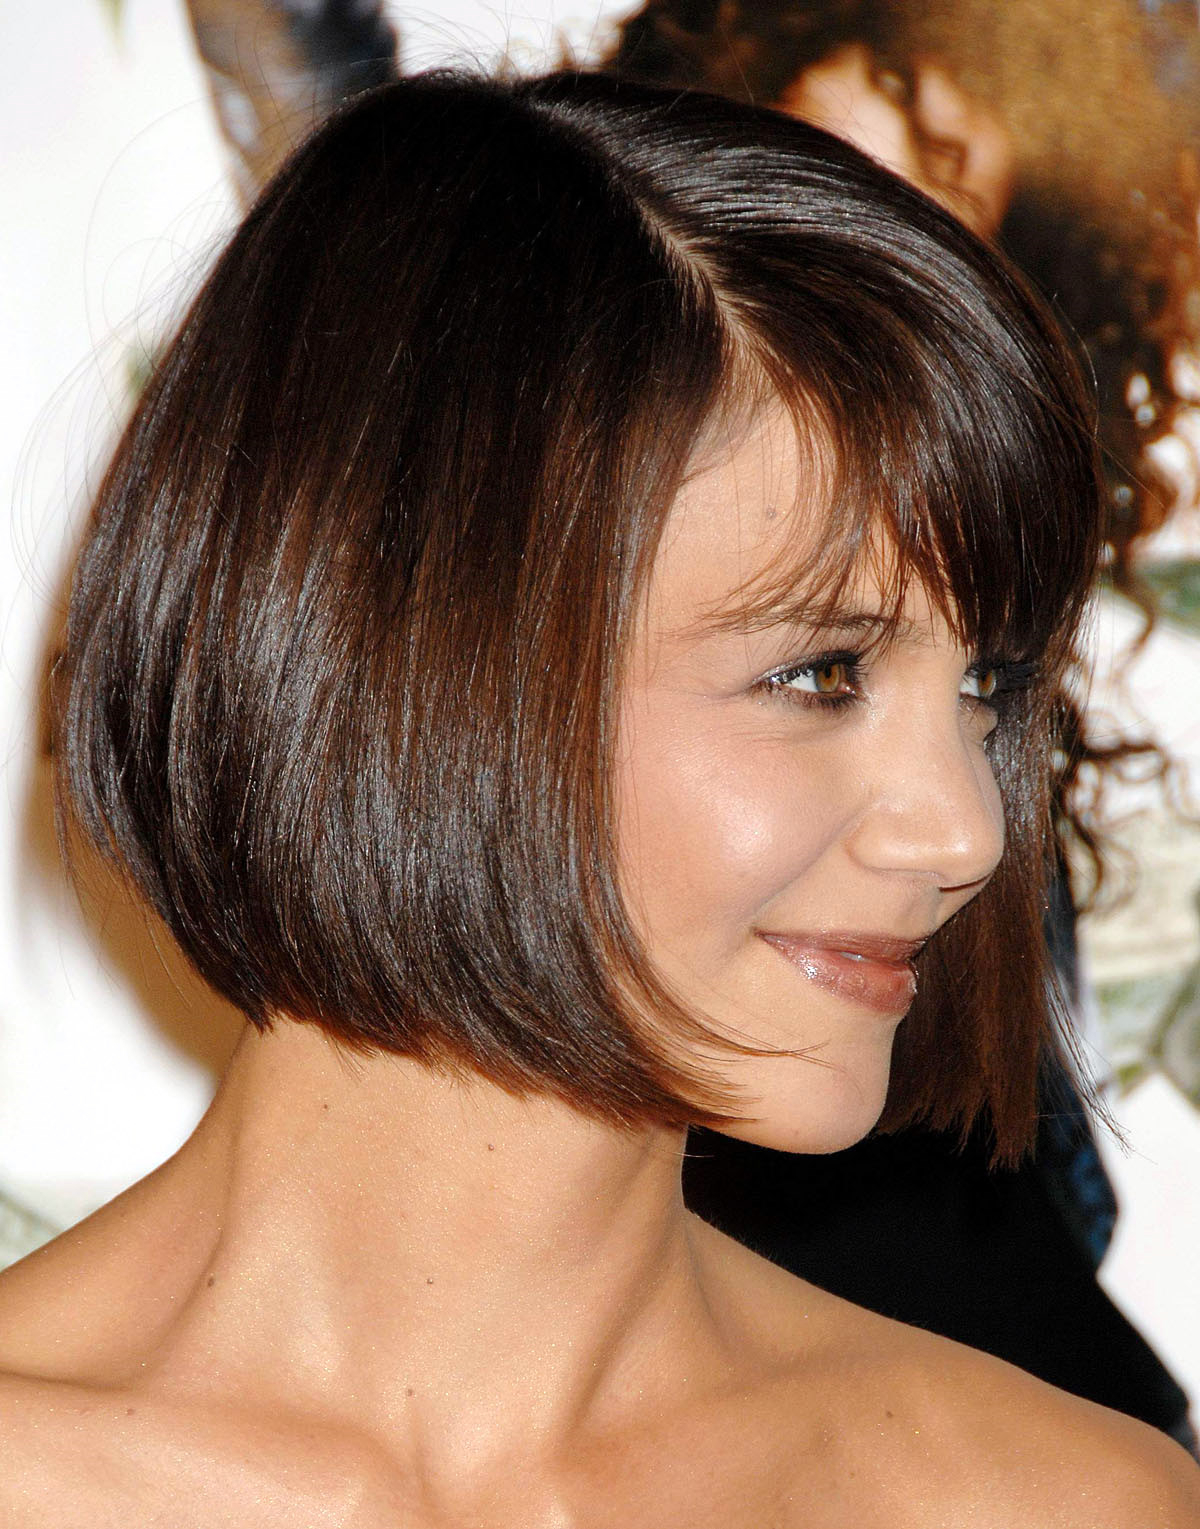 The A Shaped Bob Haircut Touching The Chin And The Slanting Bangs Regarding Classy Slanted Blonde Bob Hairstyles (View 14 of 20)